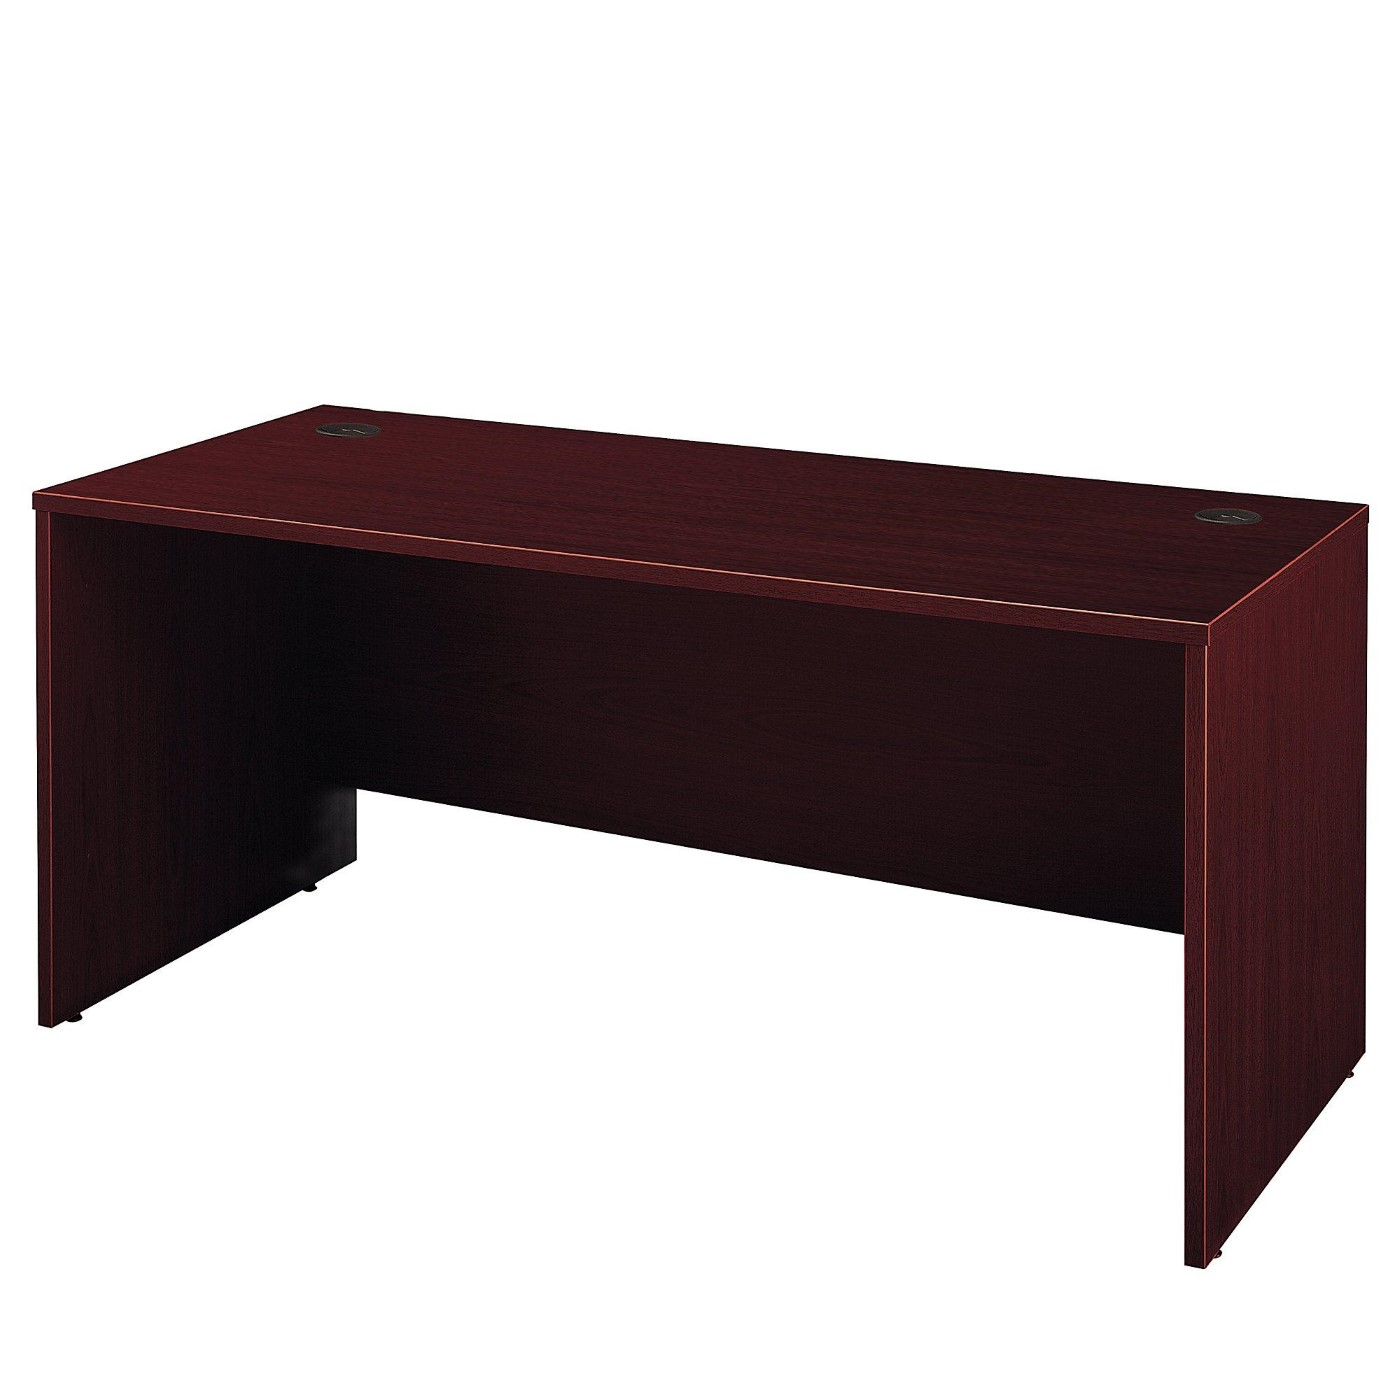 BUSH BUSINESS FURNITURE SERIES C 66W X 30D OFFICE DESK. FREE SHIPPING  VIDEO BELOW.